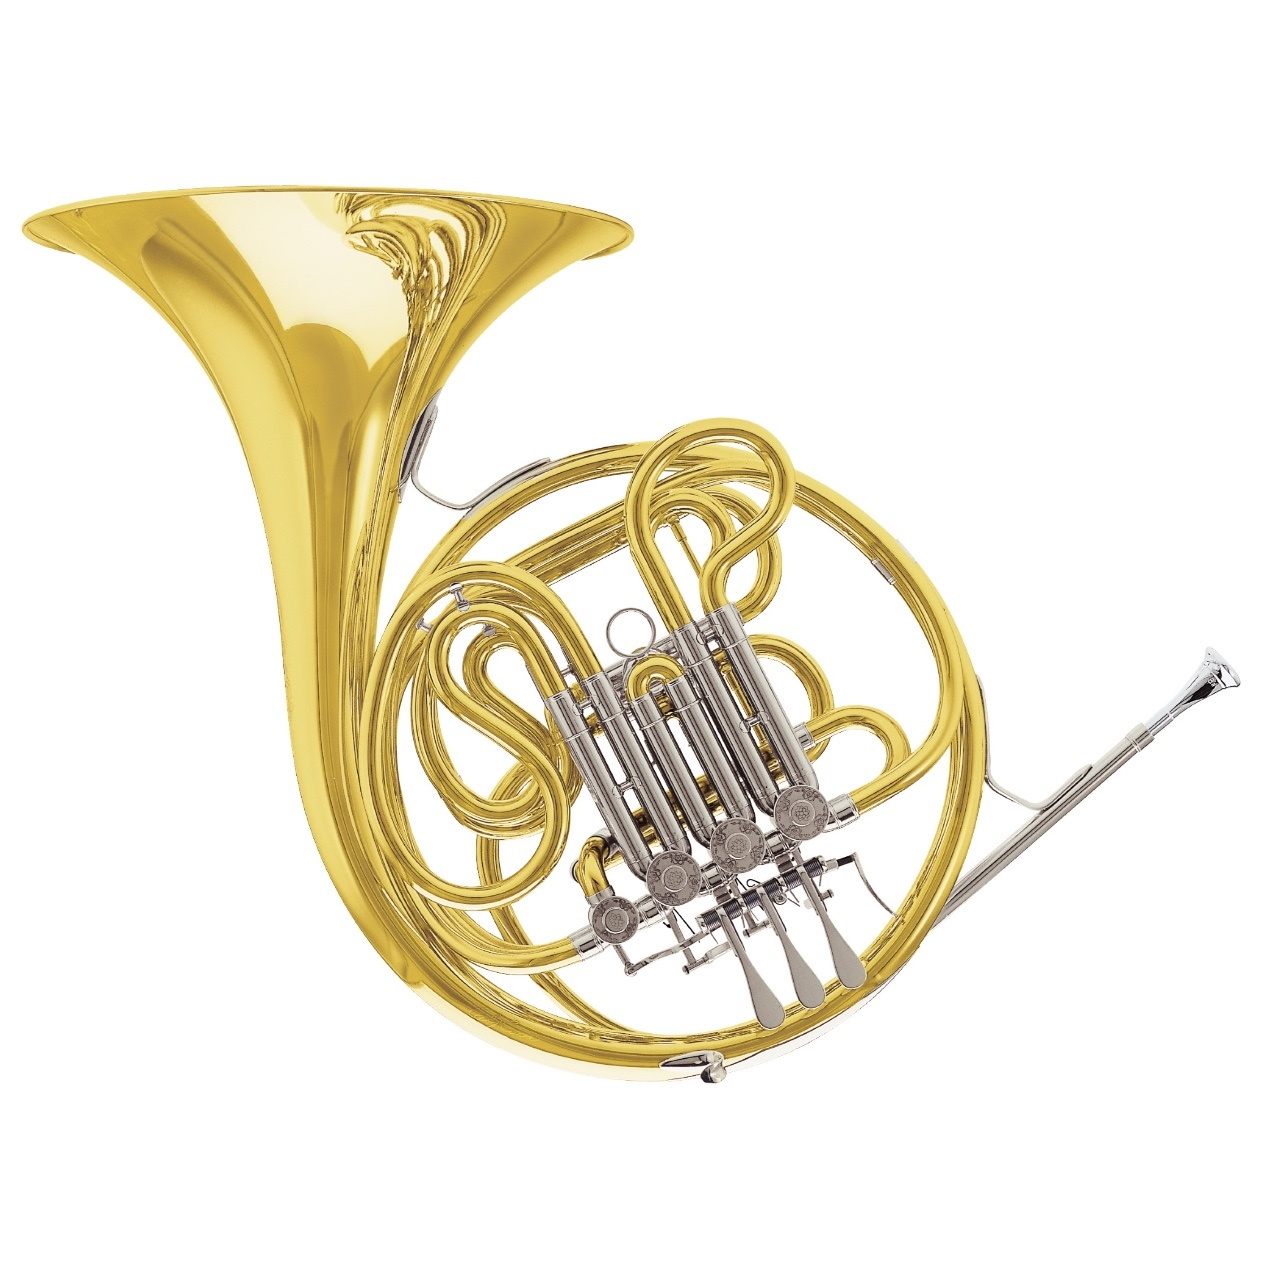 Conn Professional French Horn 11D - Multiple Finishes Available